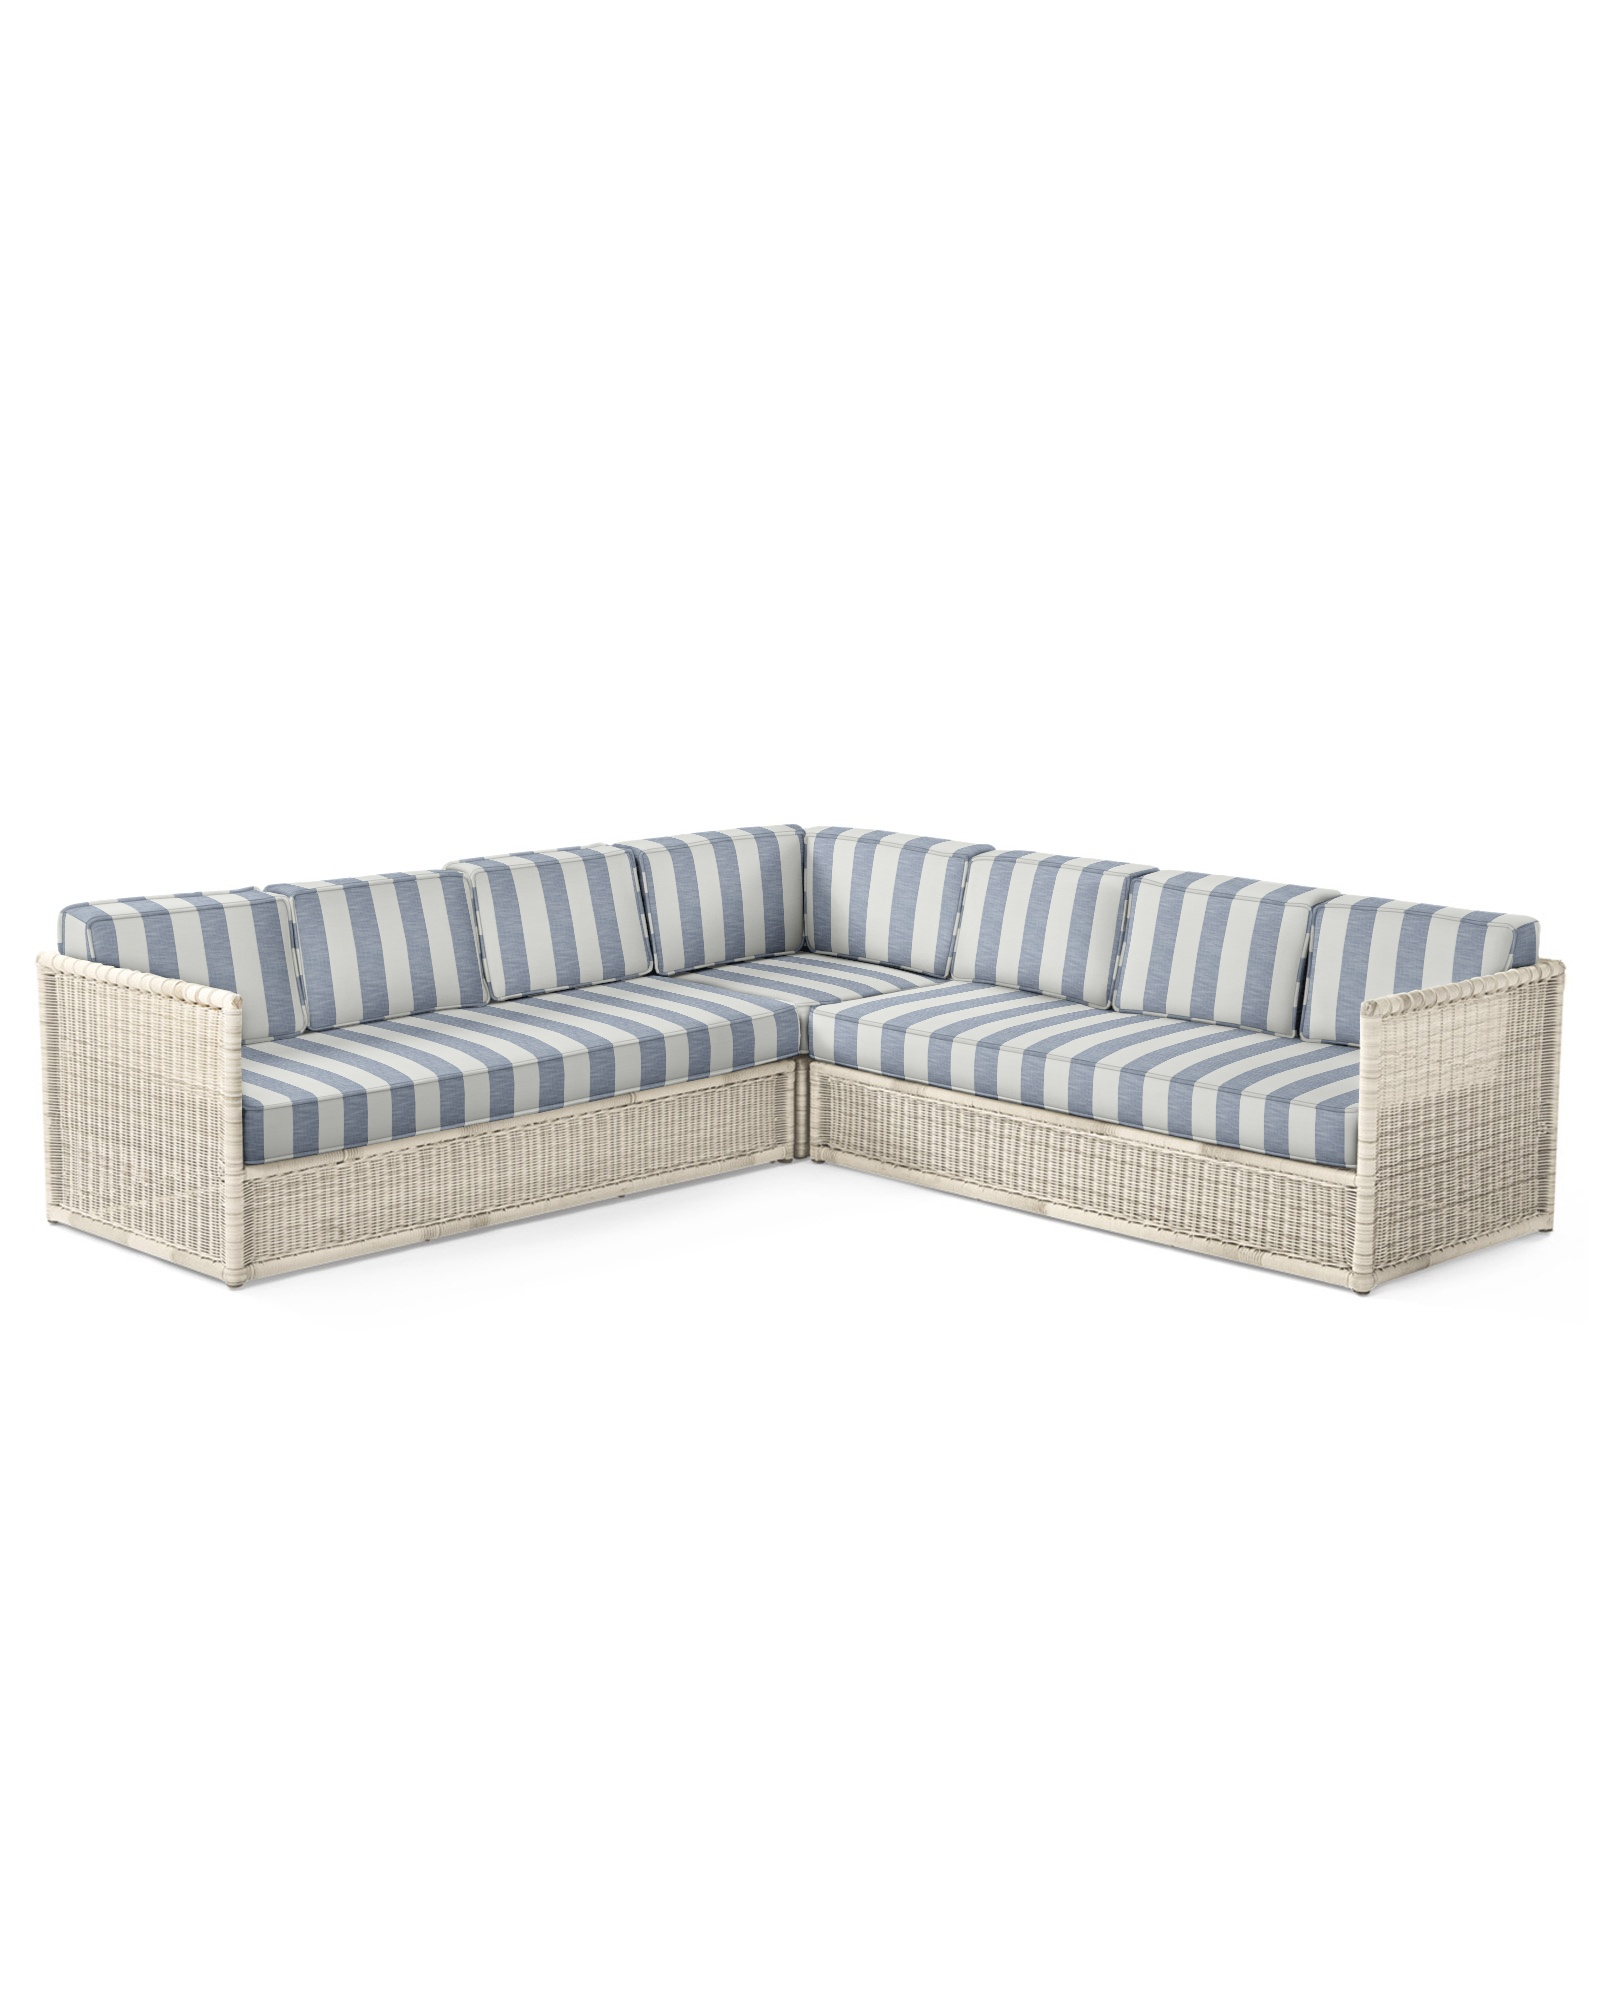 Cushion Cover for Pacifica Corner Sectional, Beach Stripe Navy